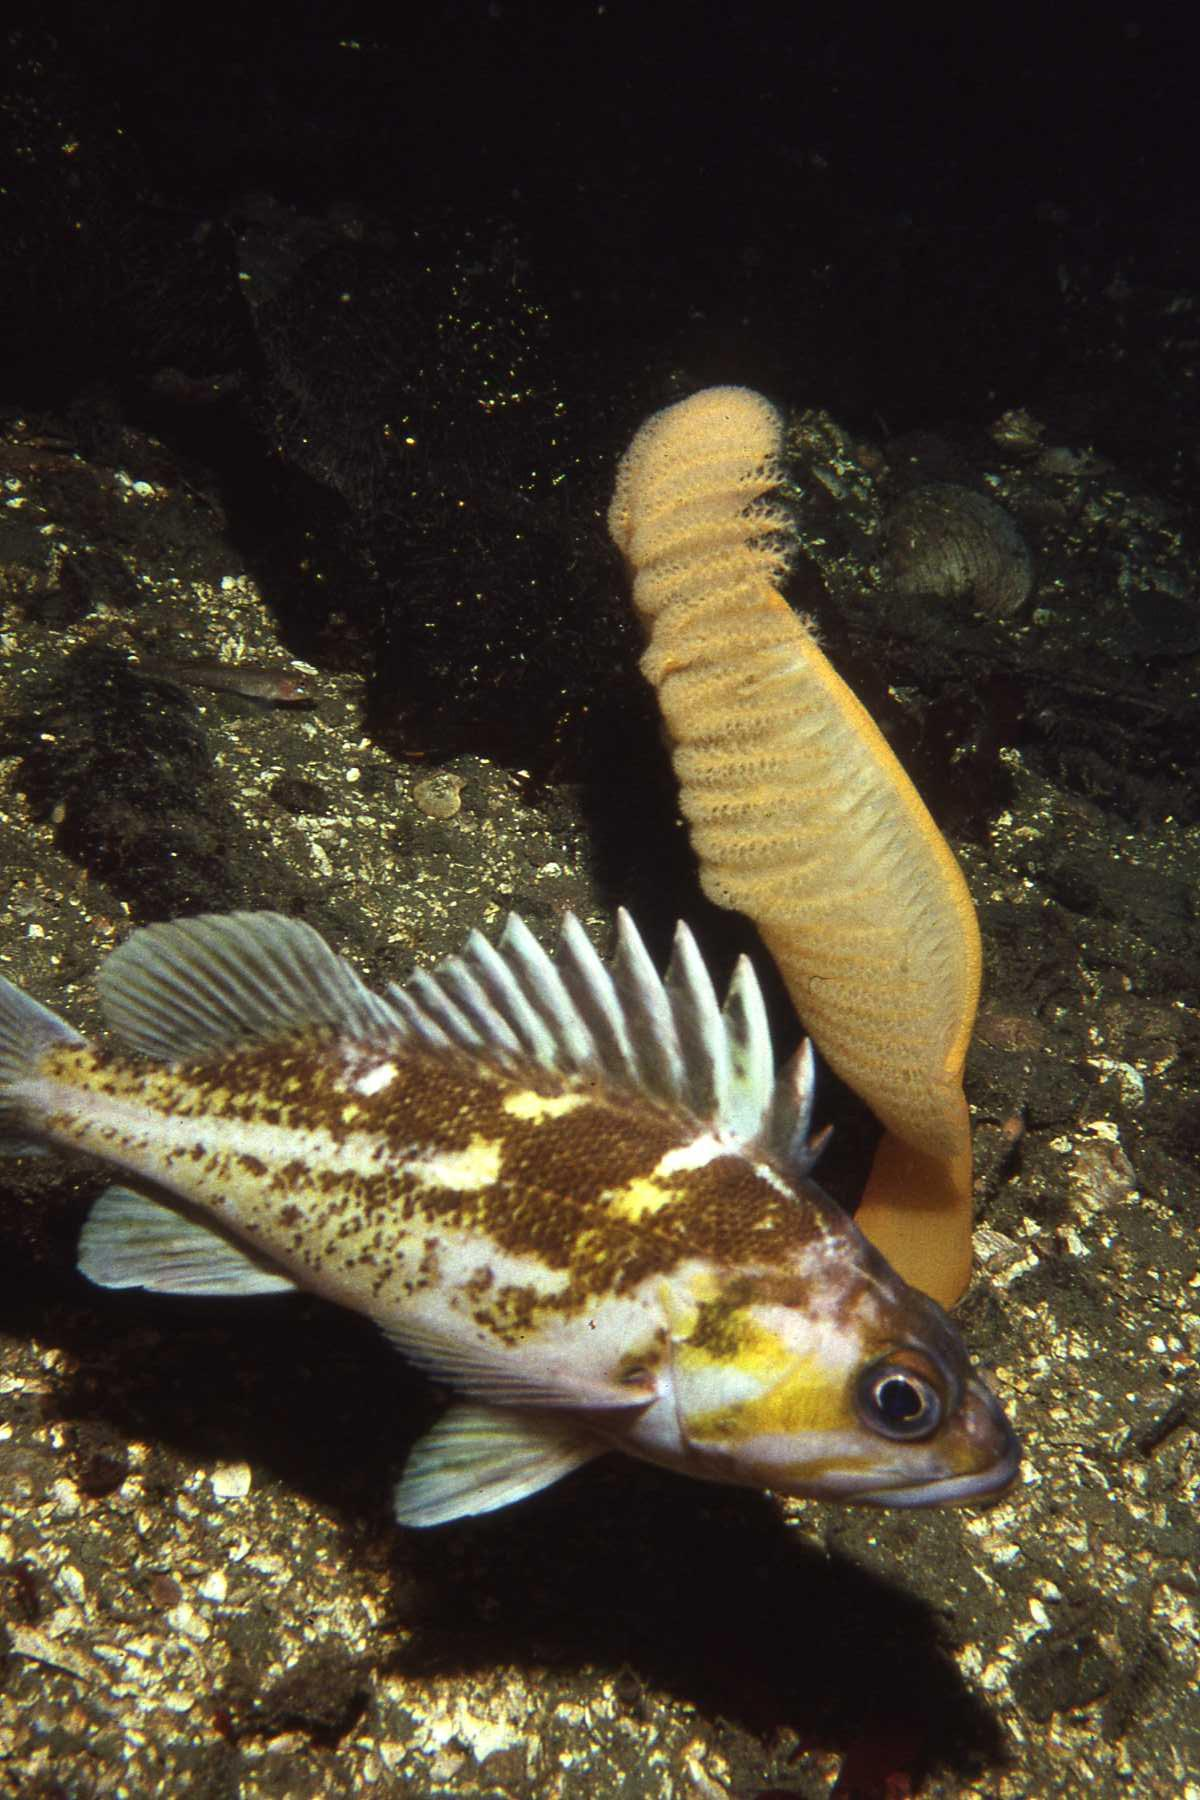 A rockfish swimming next to an underwater plant